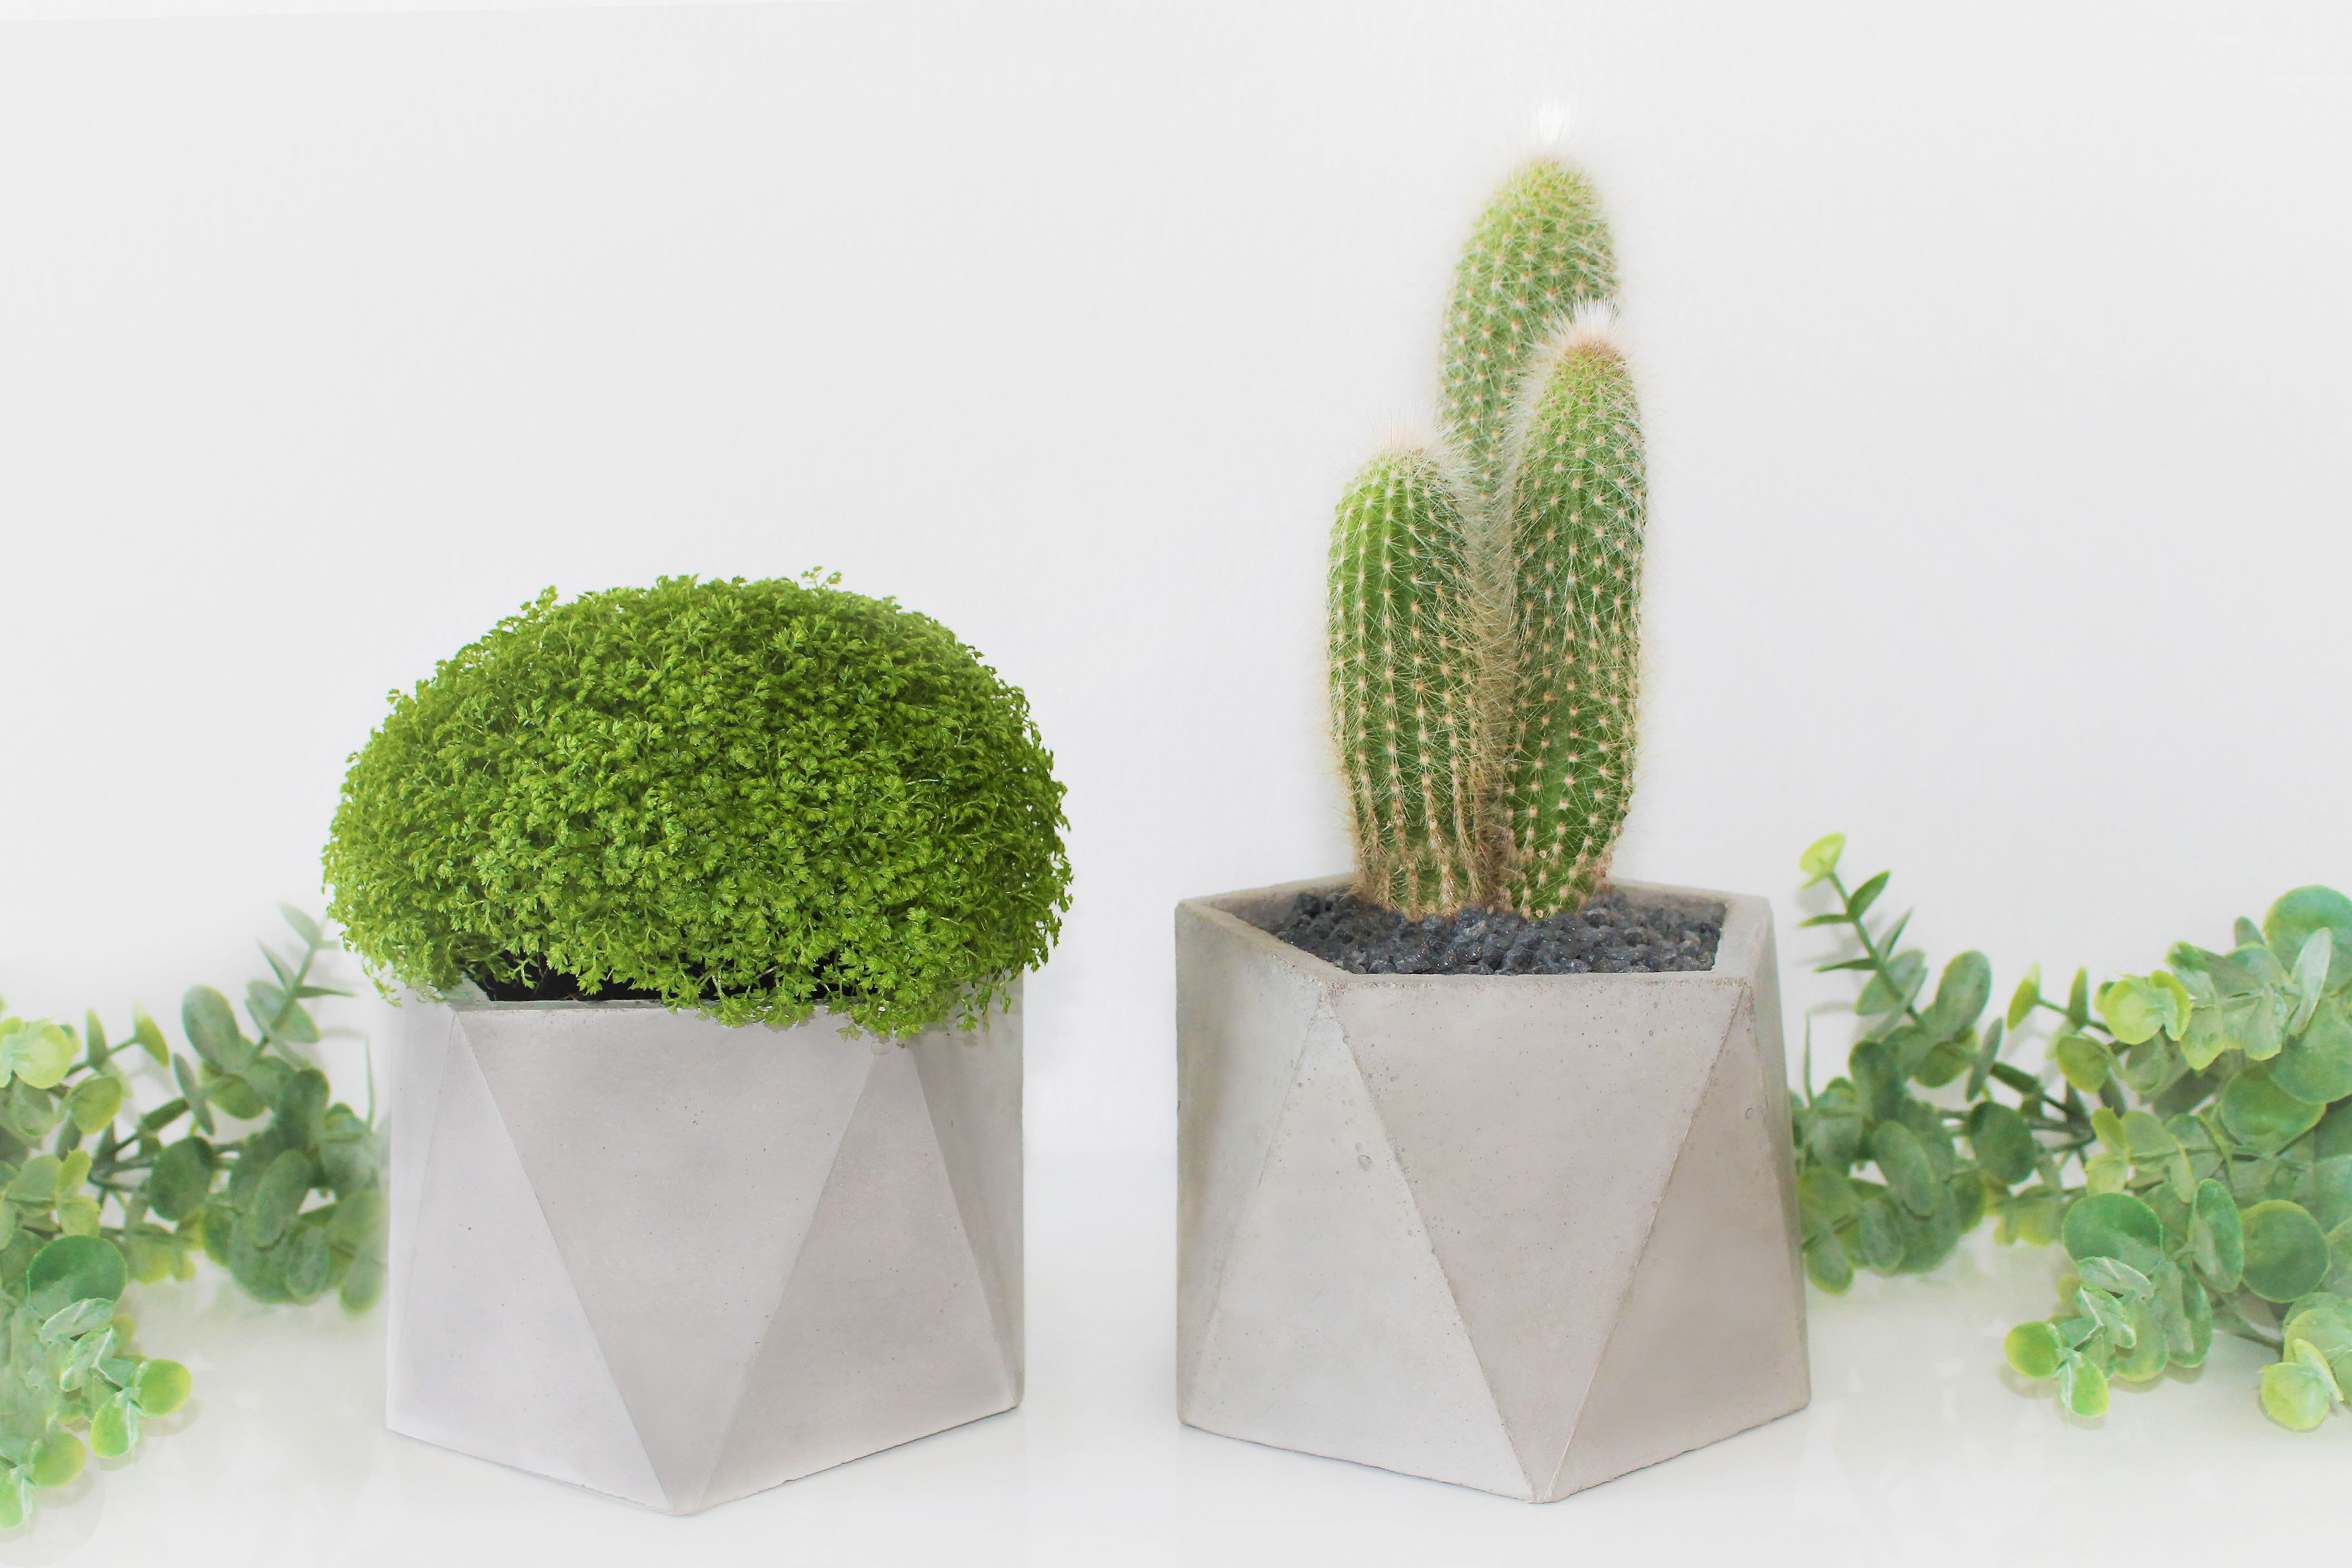 Concrete planter by Edgy + Rocks | Penta Pot | Pinterest ...